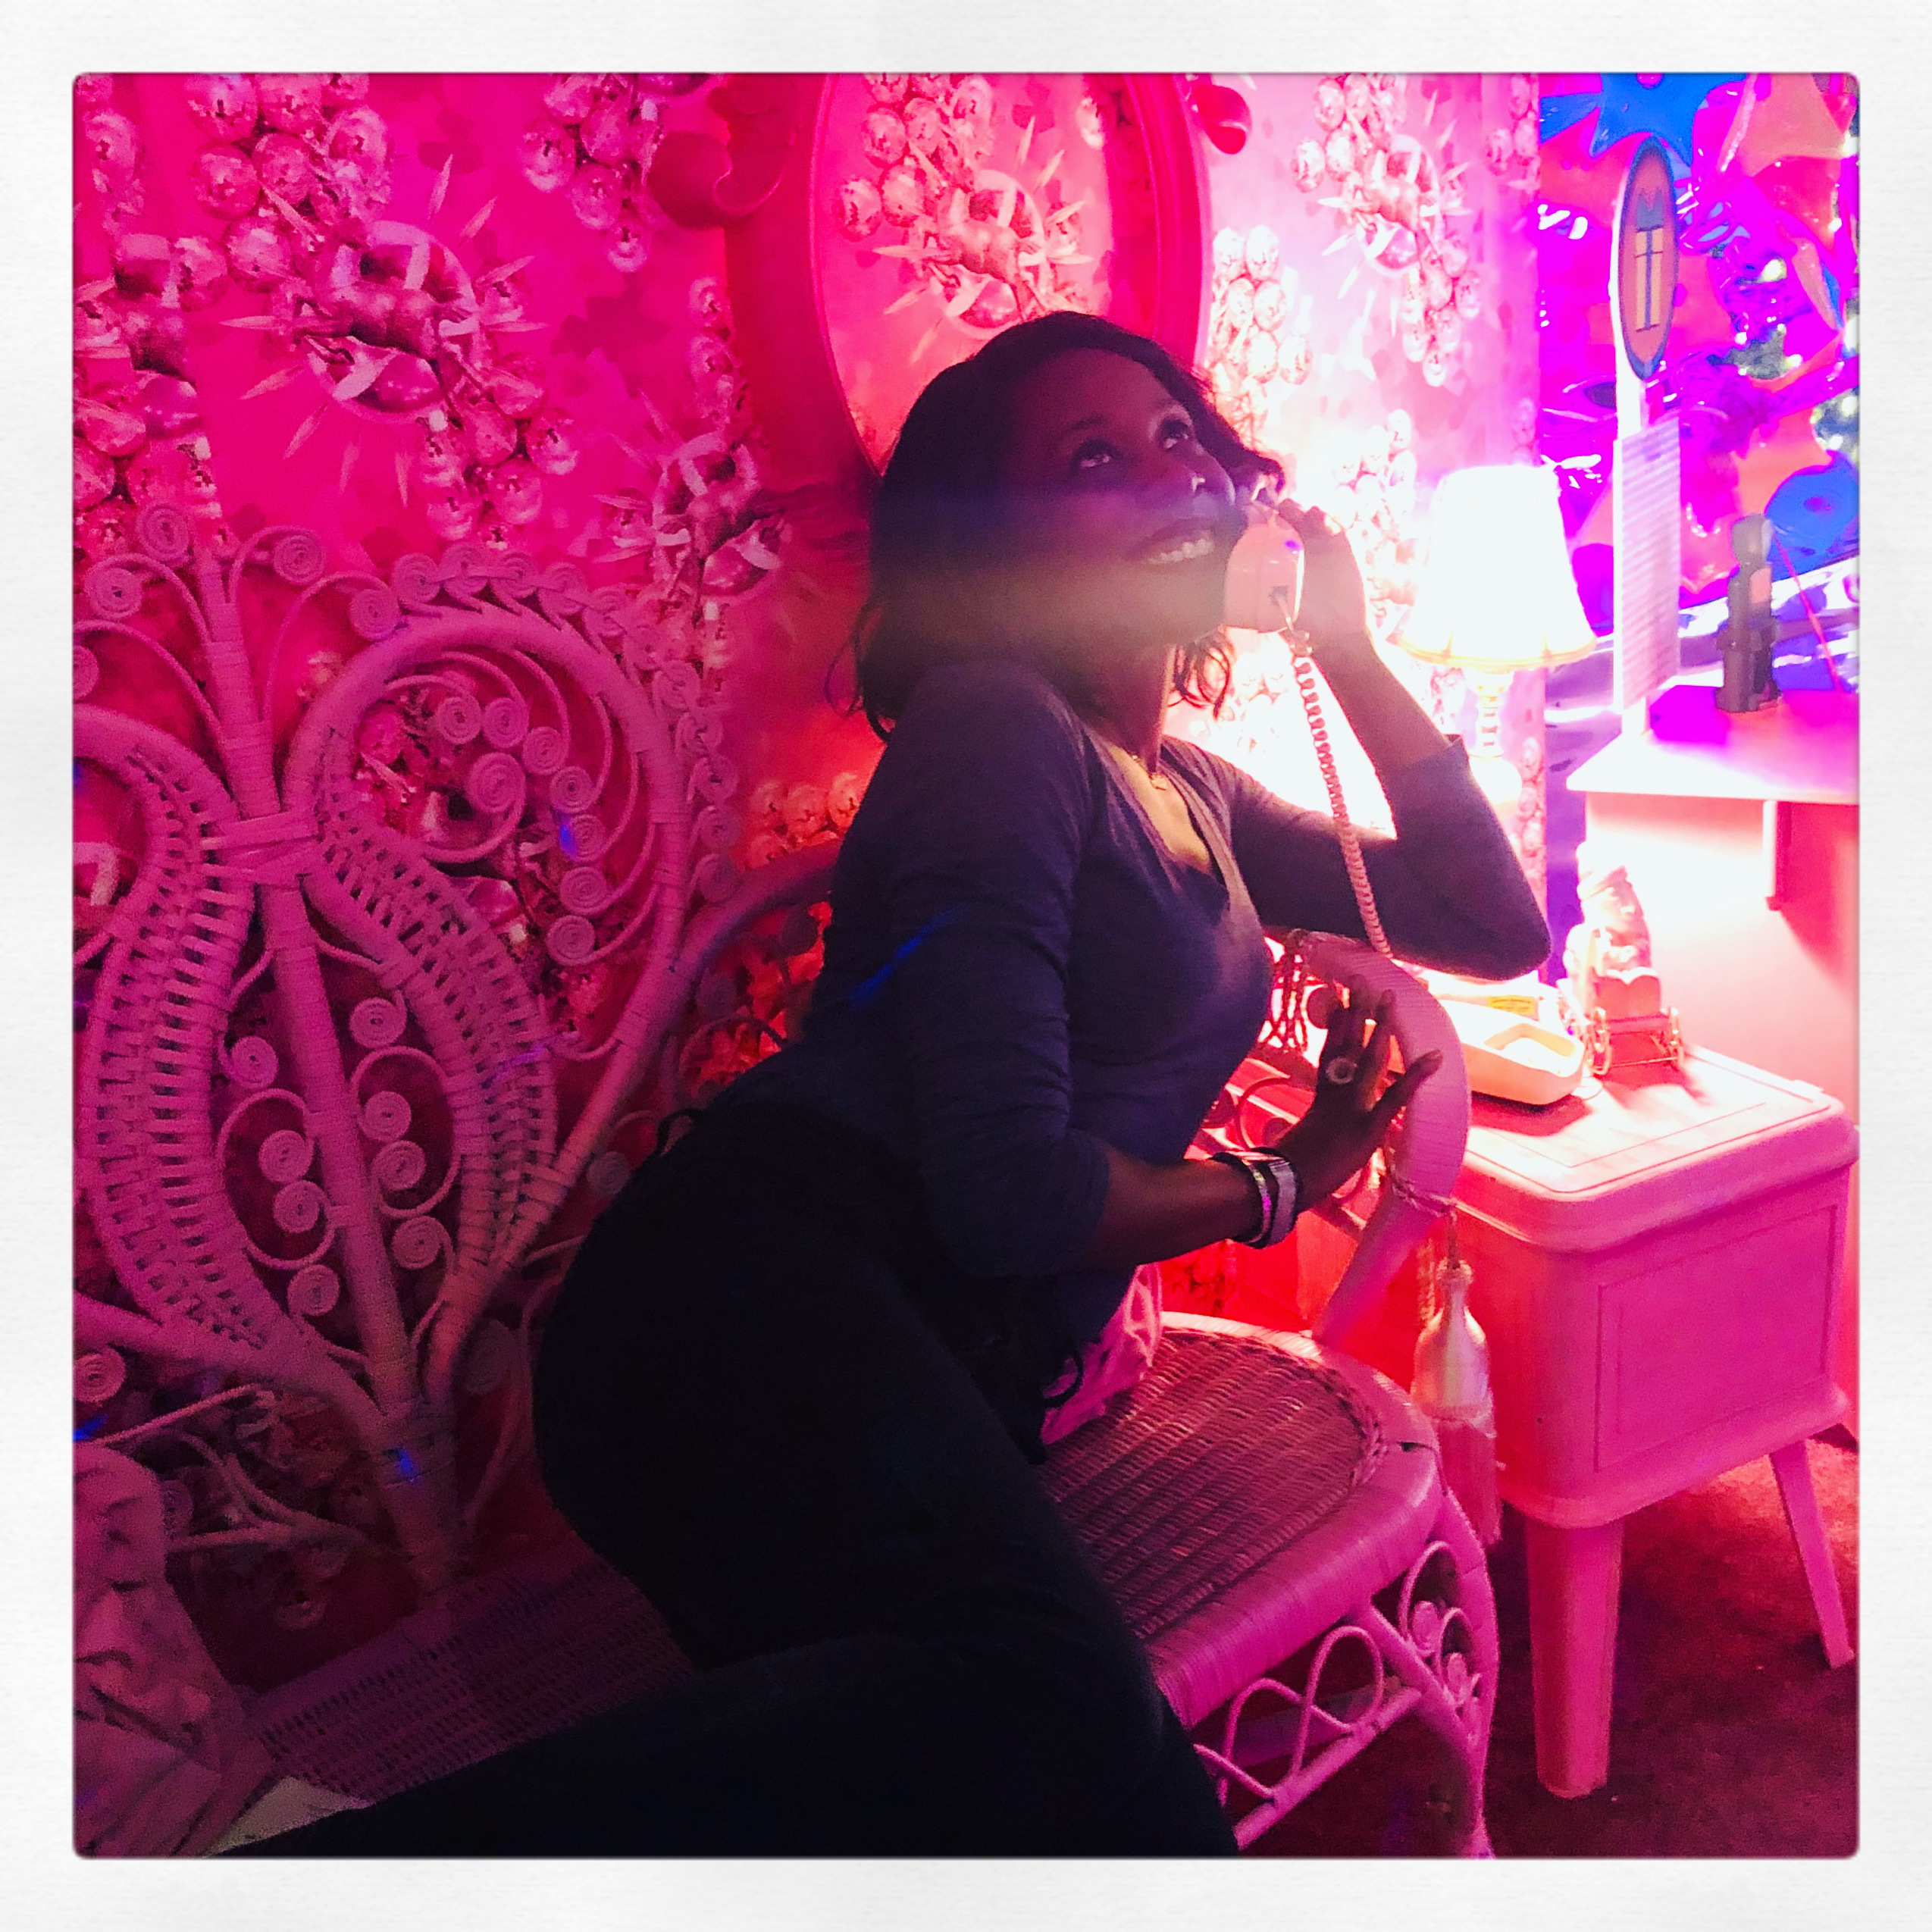 portrait of Tai in an eclectic, pink colored room. She's lounging on a bench and is holding up a corded landline phone, looking up and smiling.